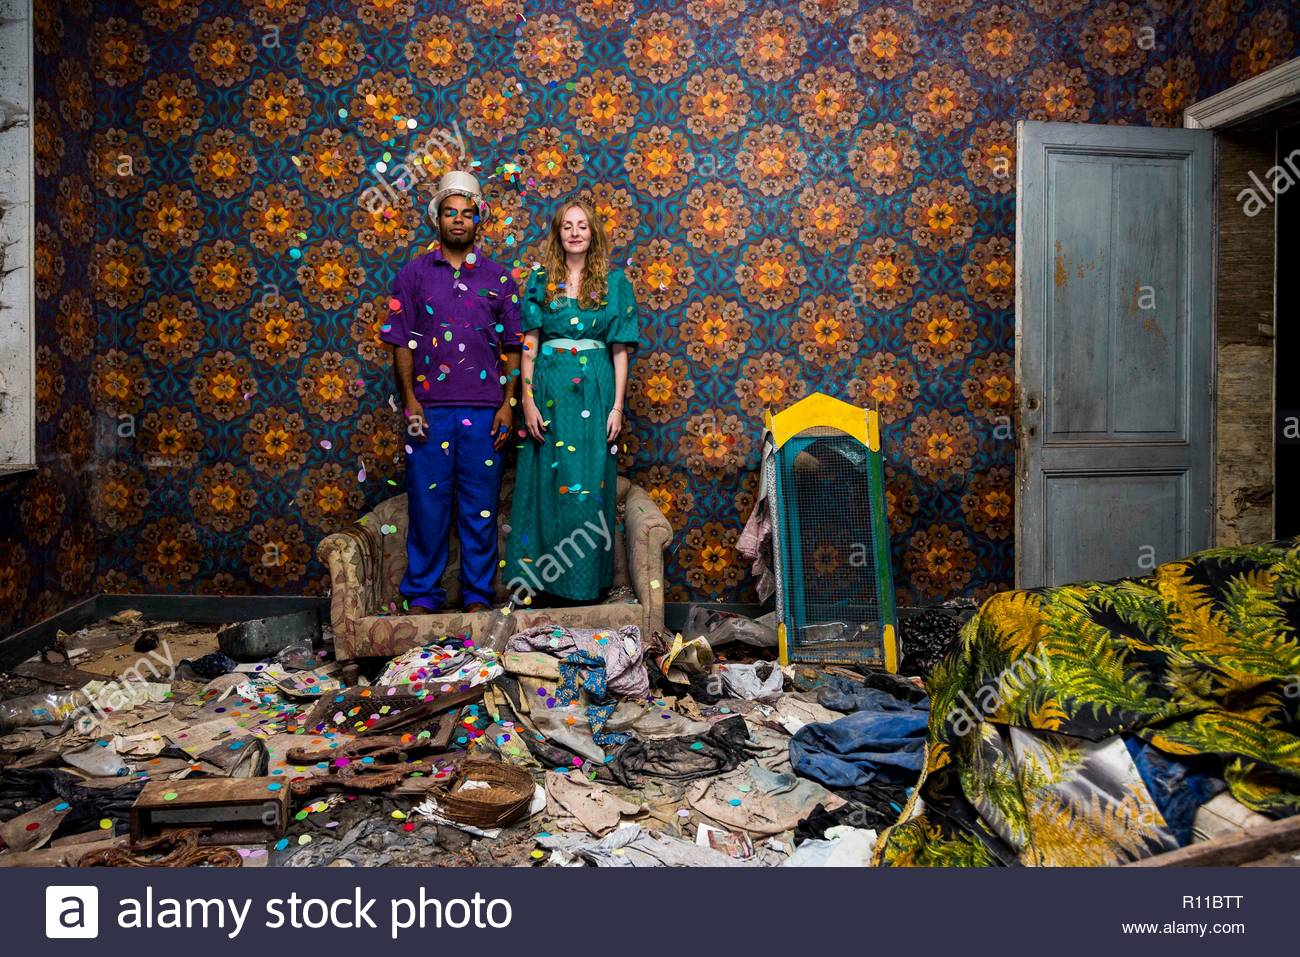 Two people in a messy house - Stock Image